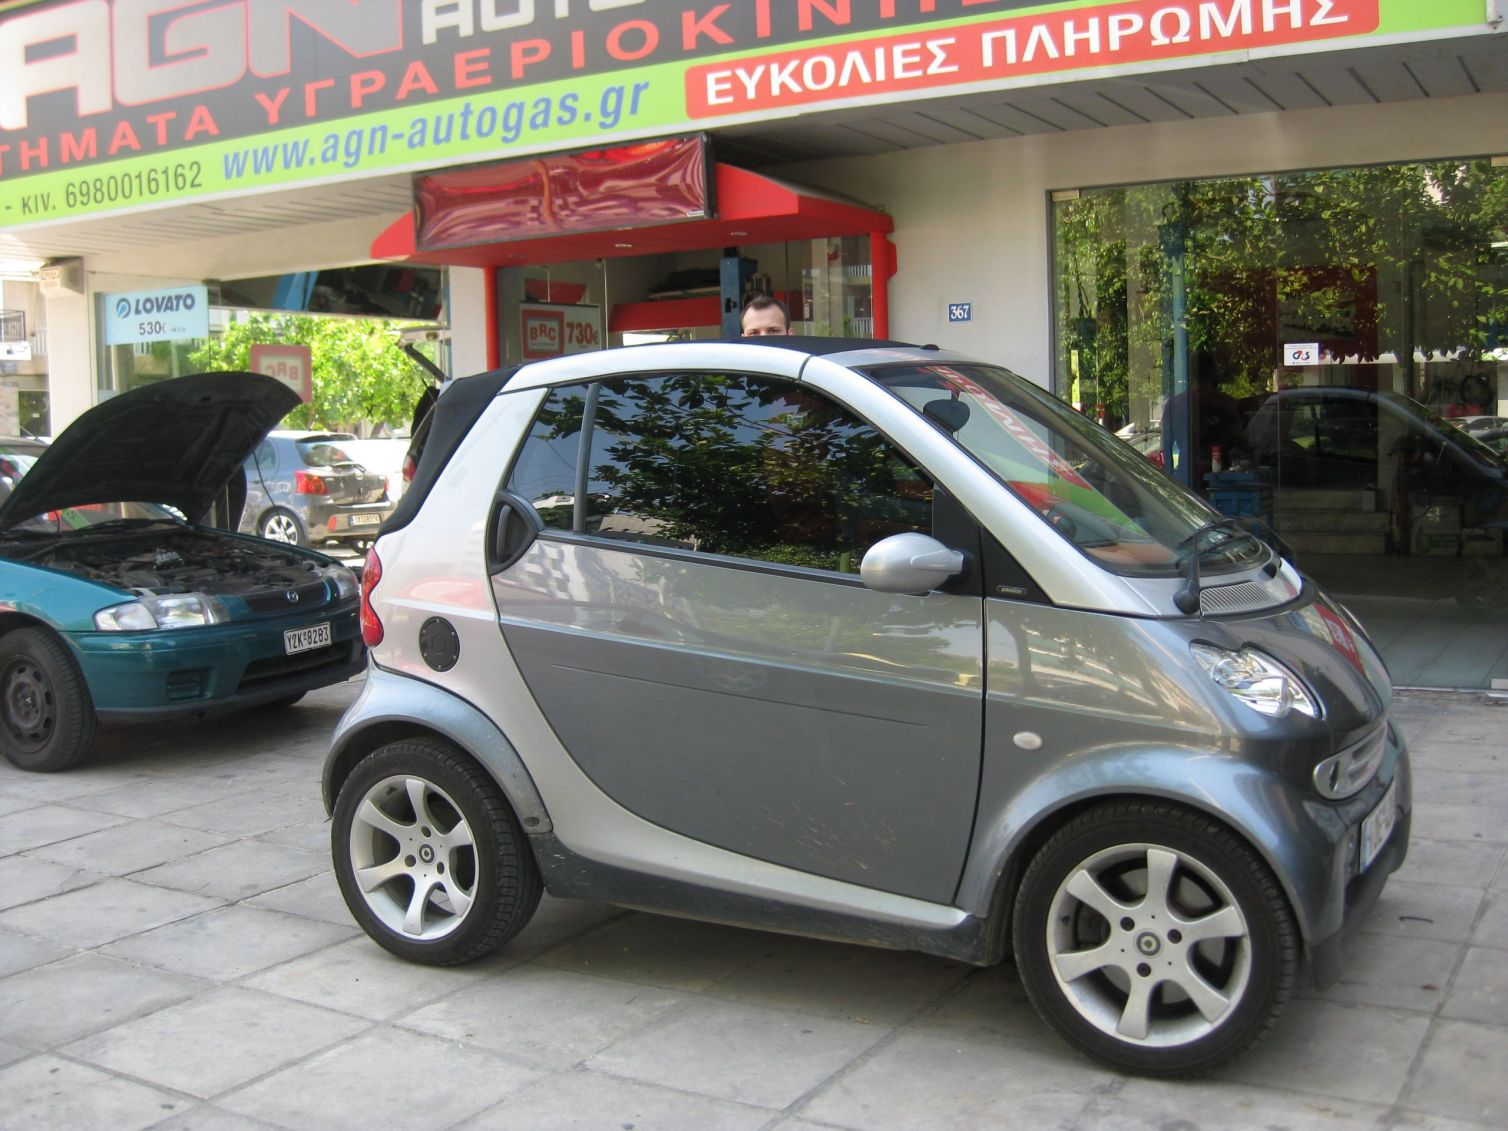 SMART FOURTWO 600cc '99 ME BRC P&D 27LT